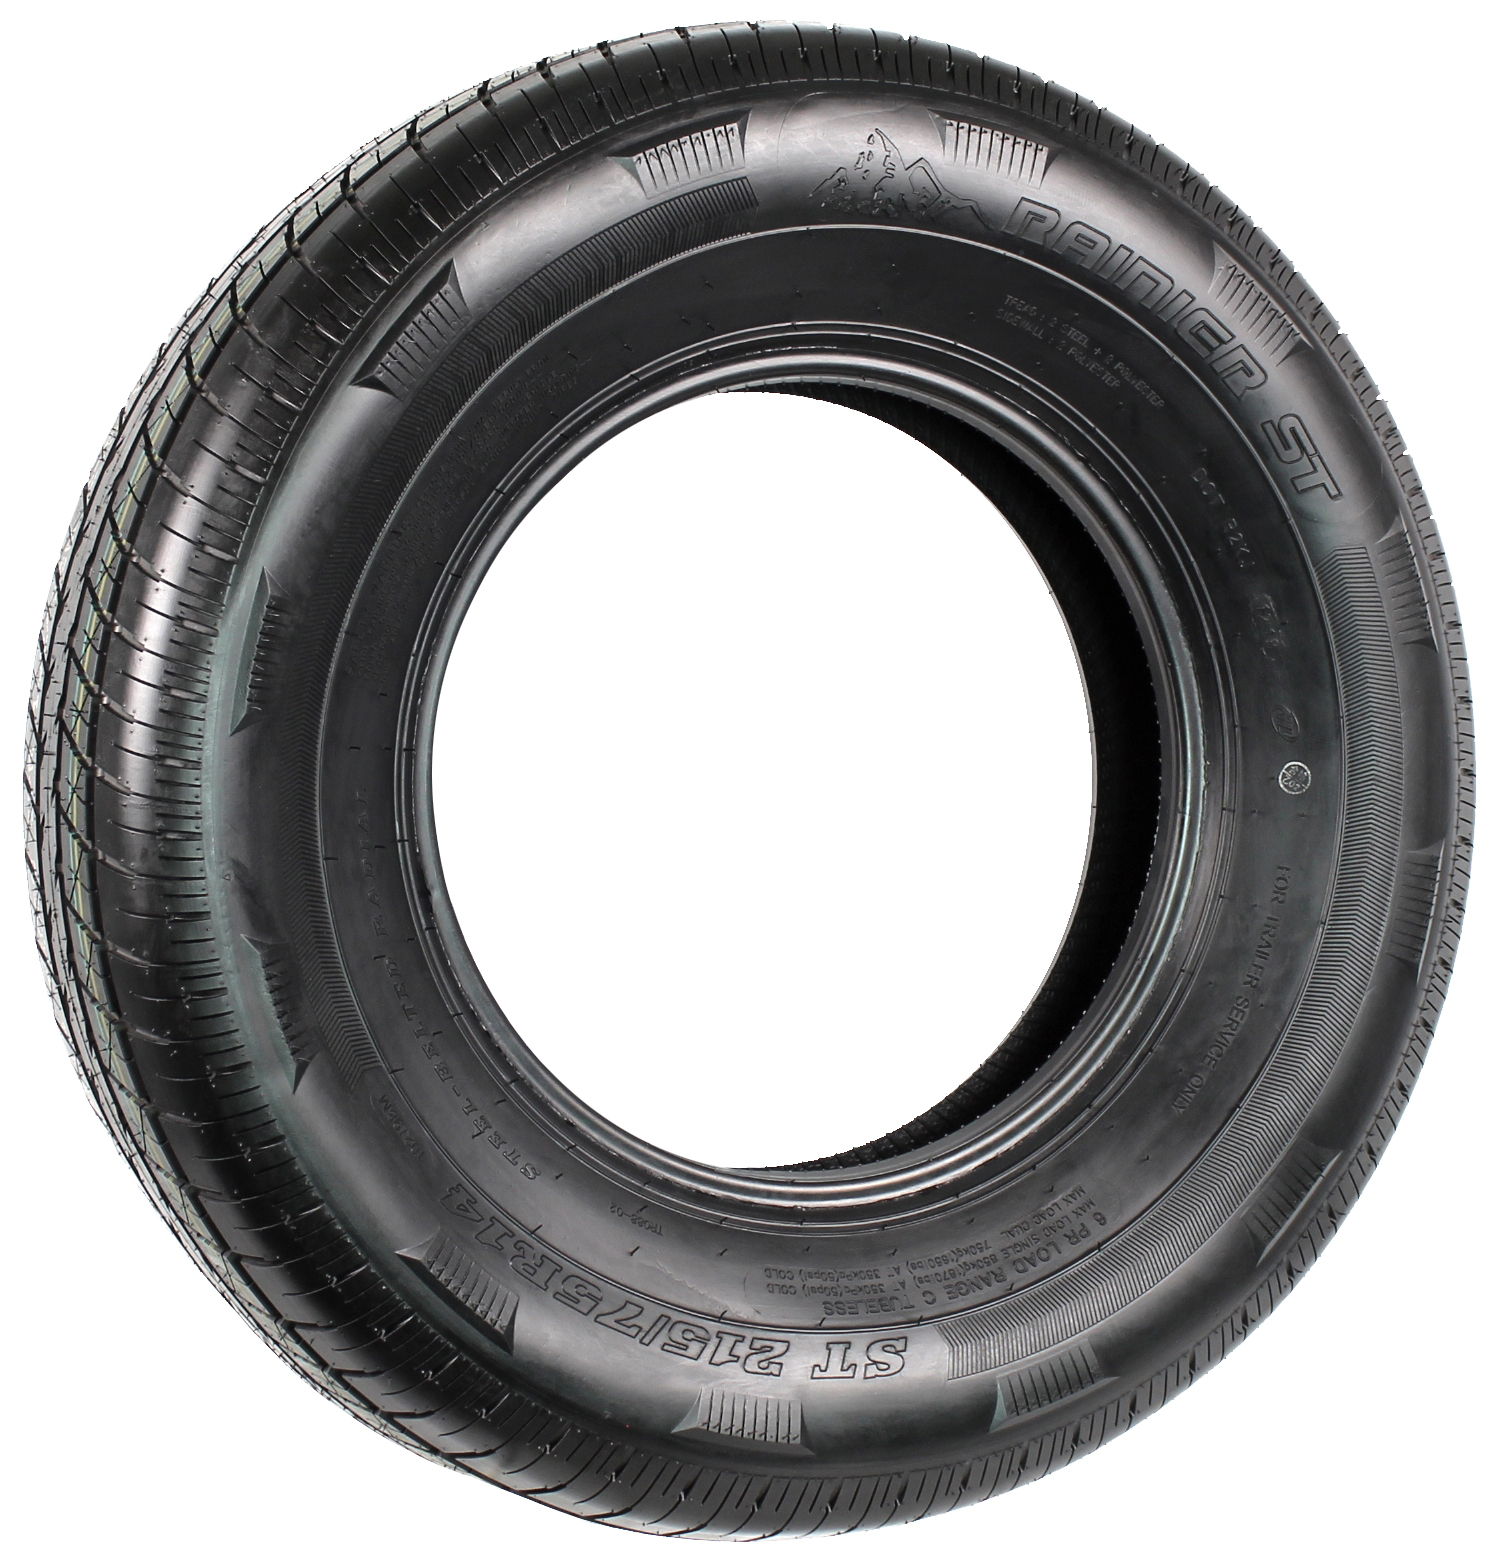 Rainier ST215/75R14 LRC 6-Ply Radial Trailer Tire Image